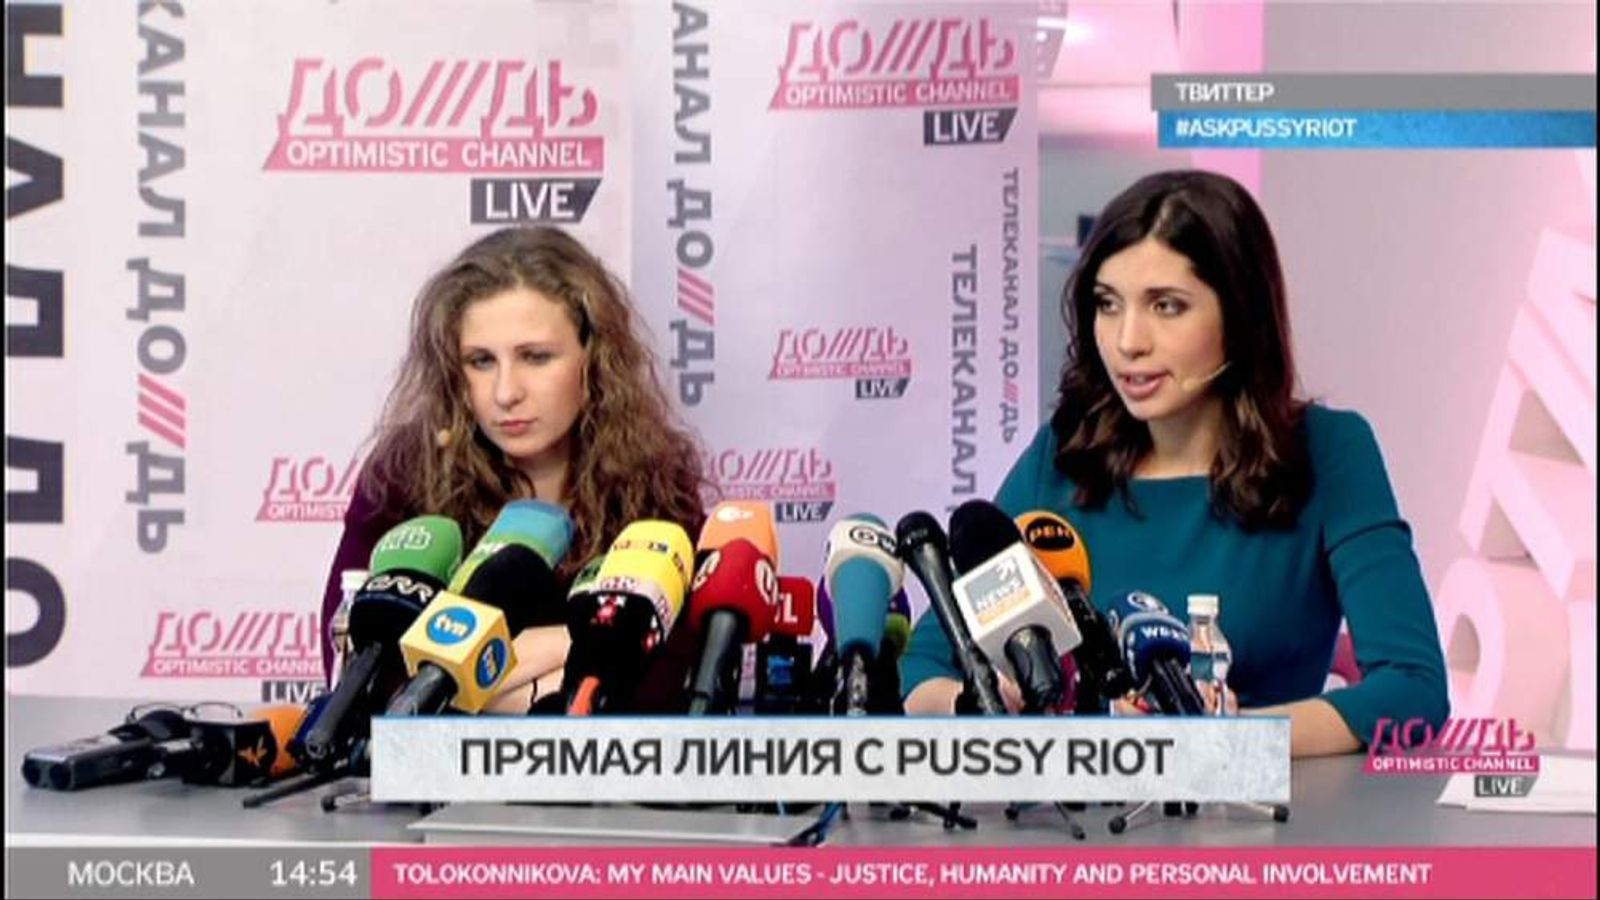 Members of Pussy Riot